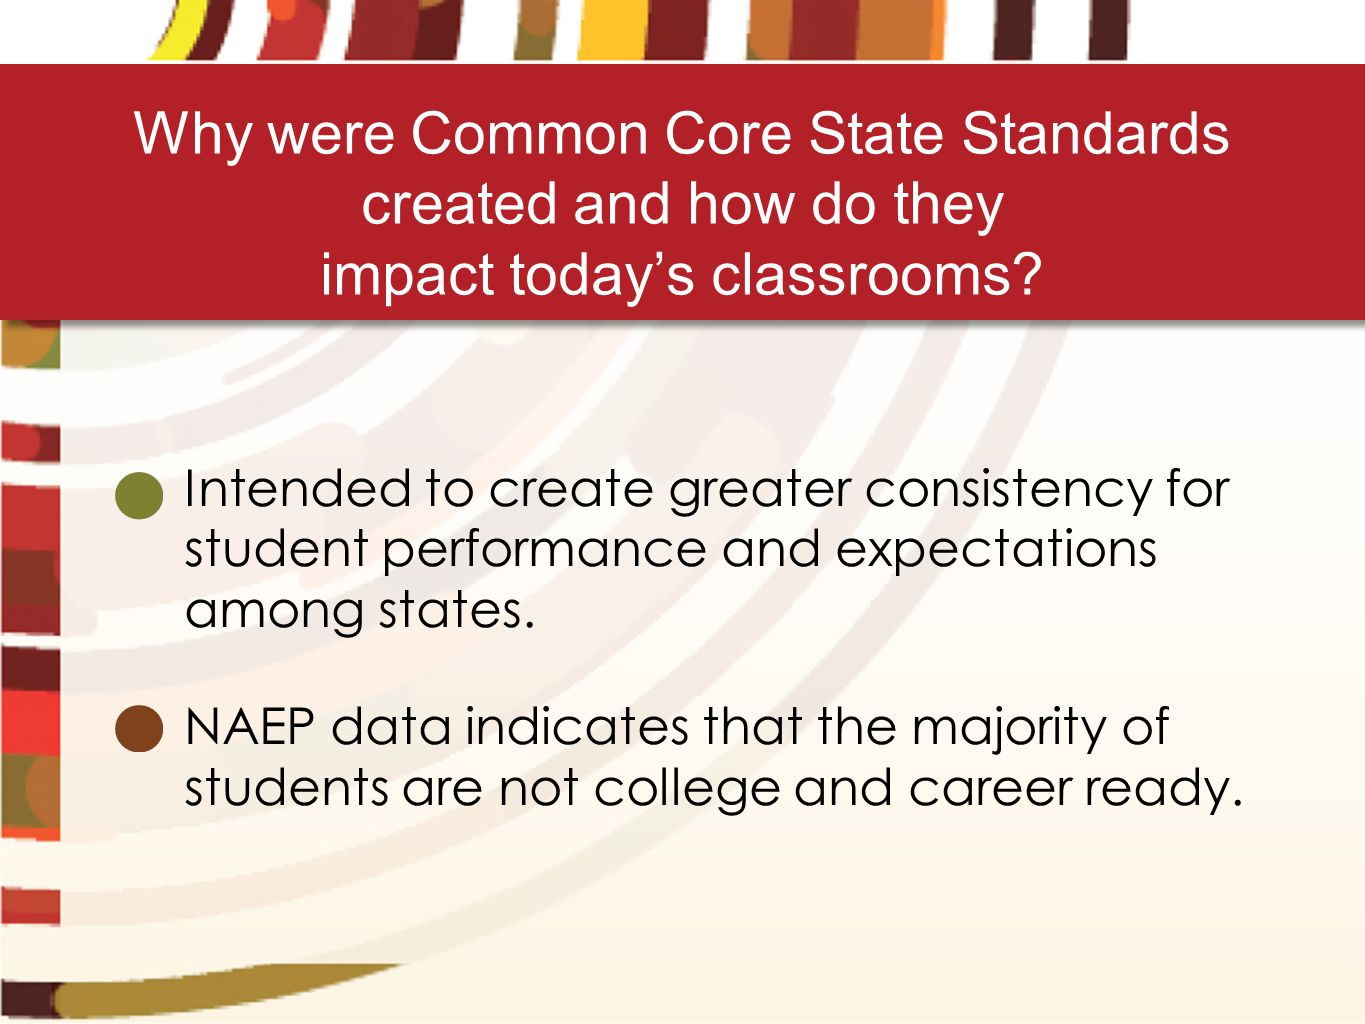 Intended to create greater consistency for student performance and expectations among states. NAEP data indicates that the majority of students are no